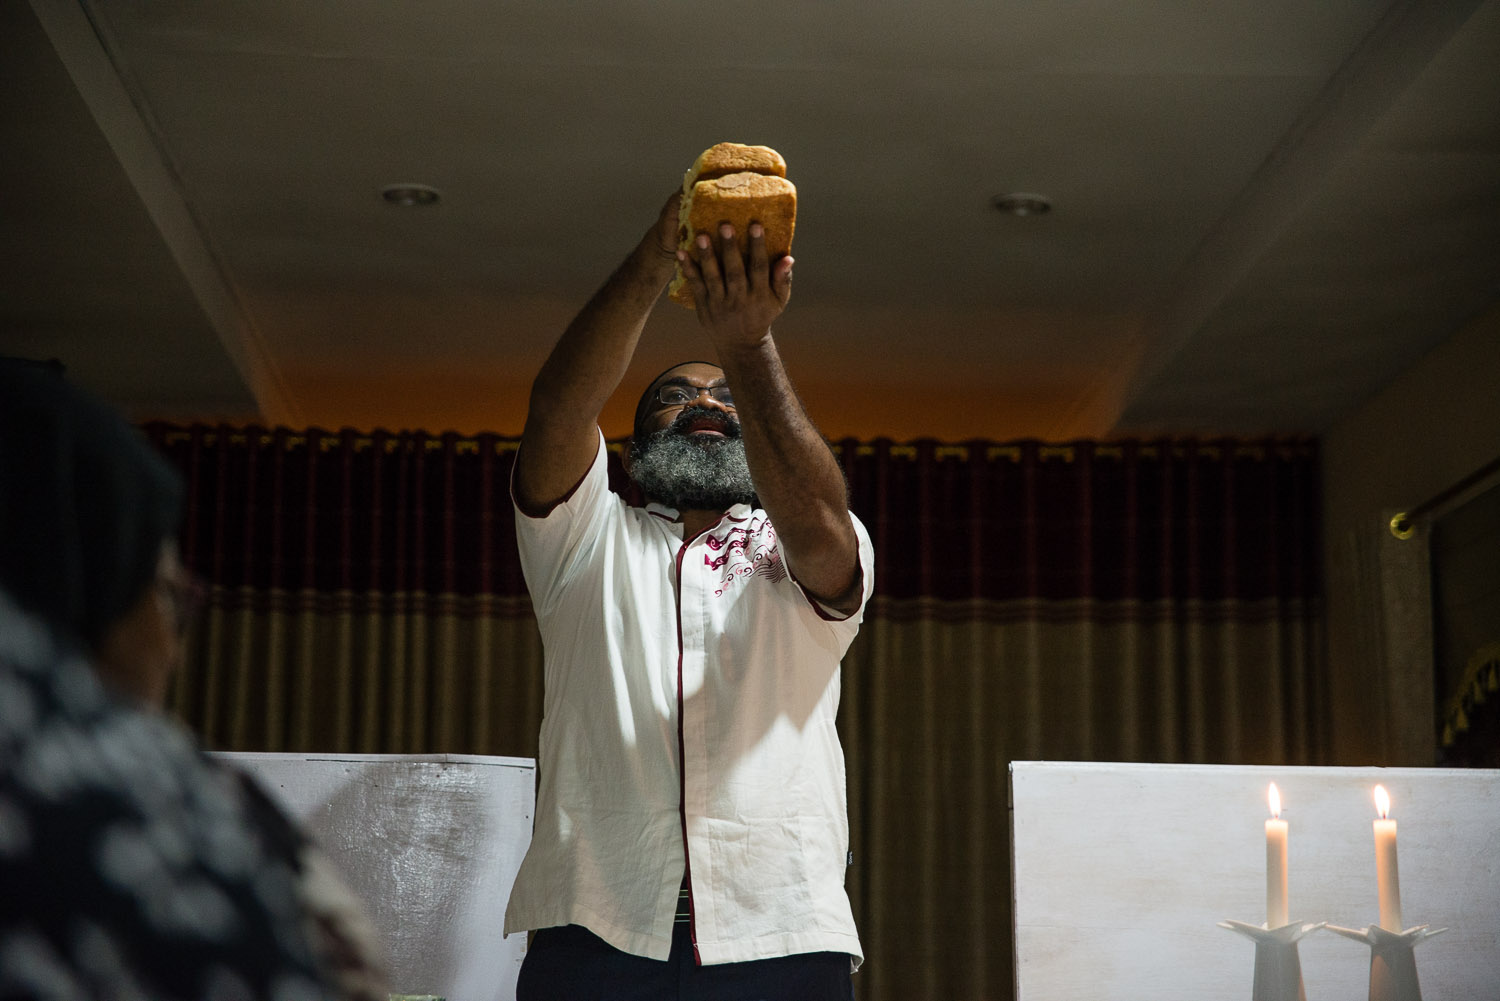 Harun holds the Challah to be blessed on Friday night Shabbat services in his home synagogue. He and Diane are not only leaders of the community, but also teachers, bringing prayer and song into the lives of the community members.